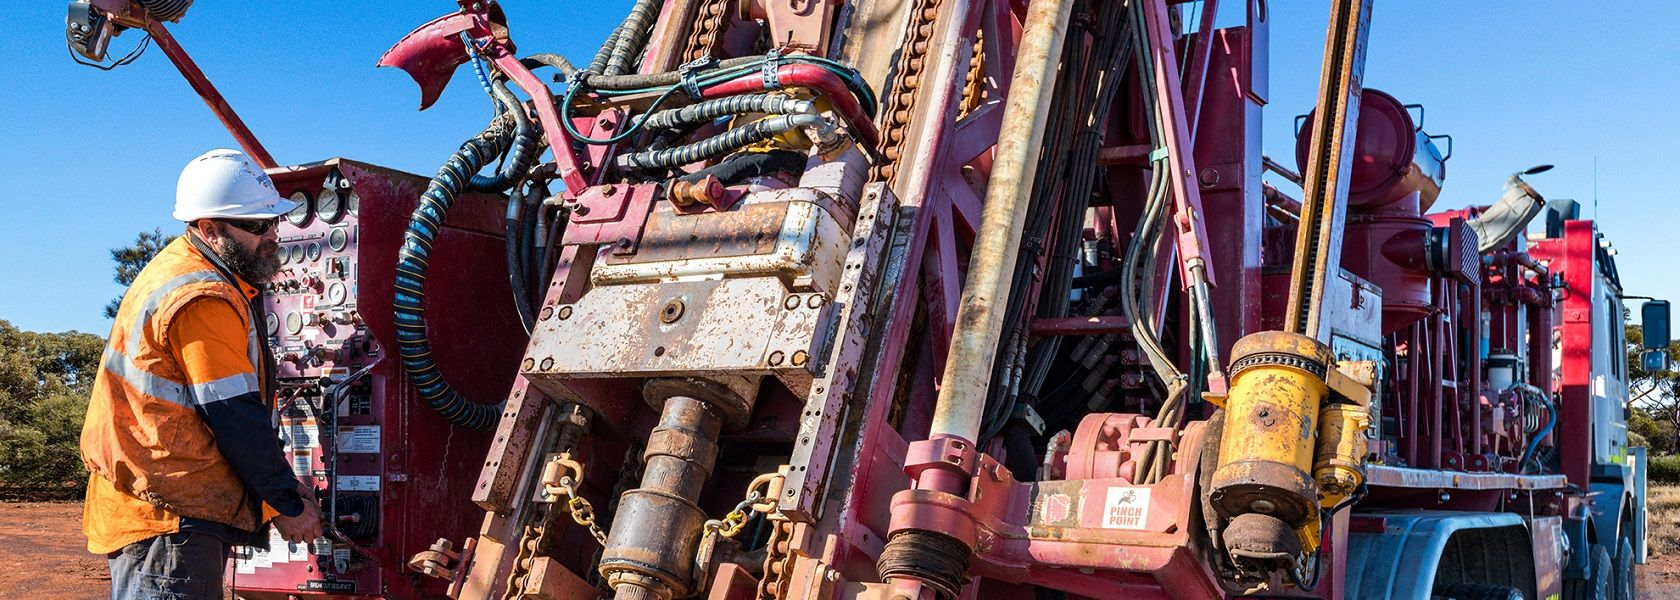 Drill rig company Schramm hits financial wall - Mining Magazine